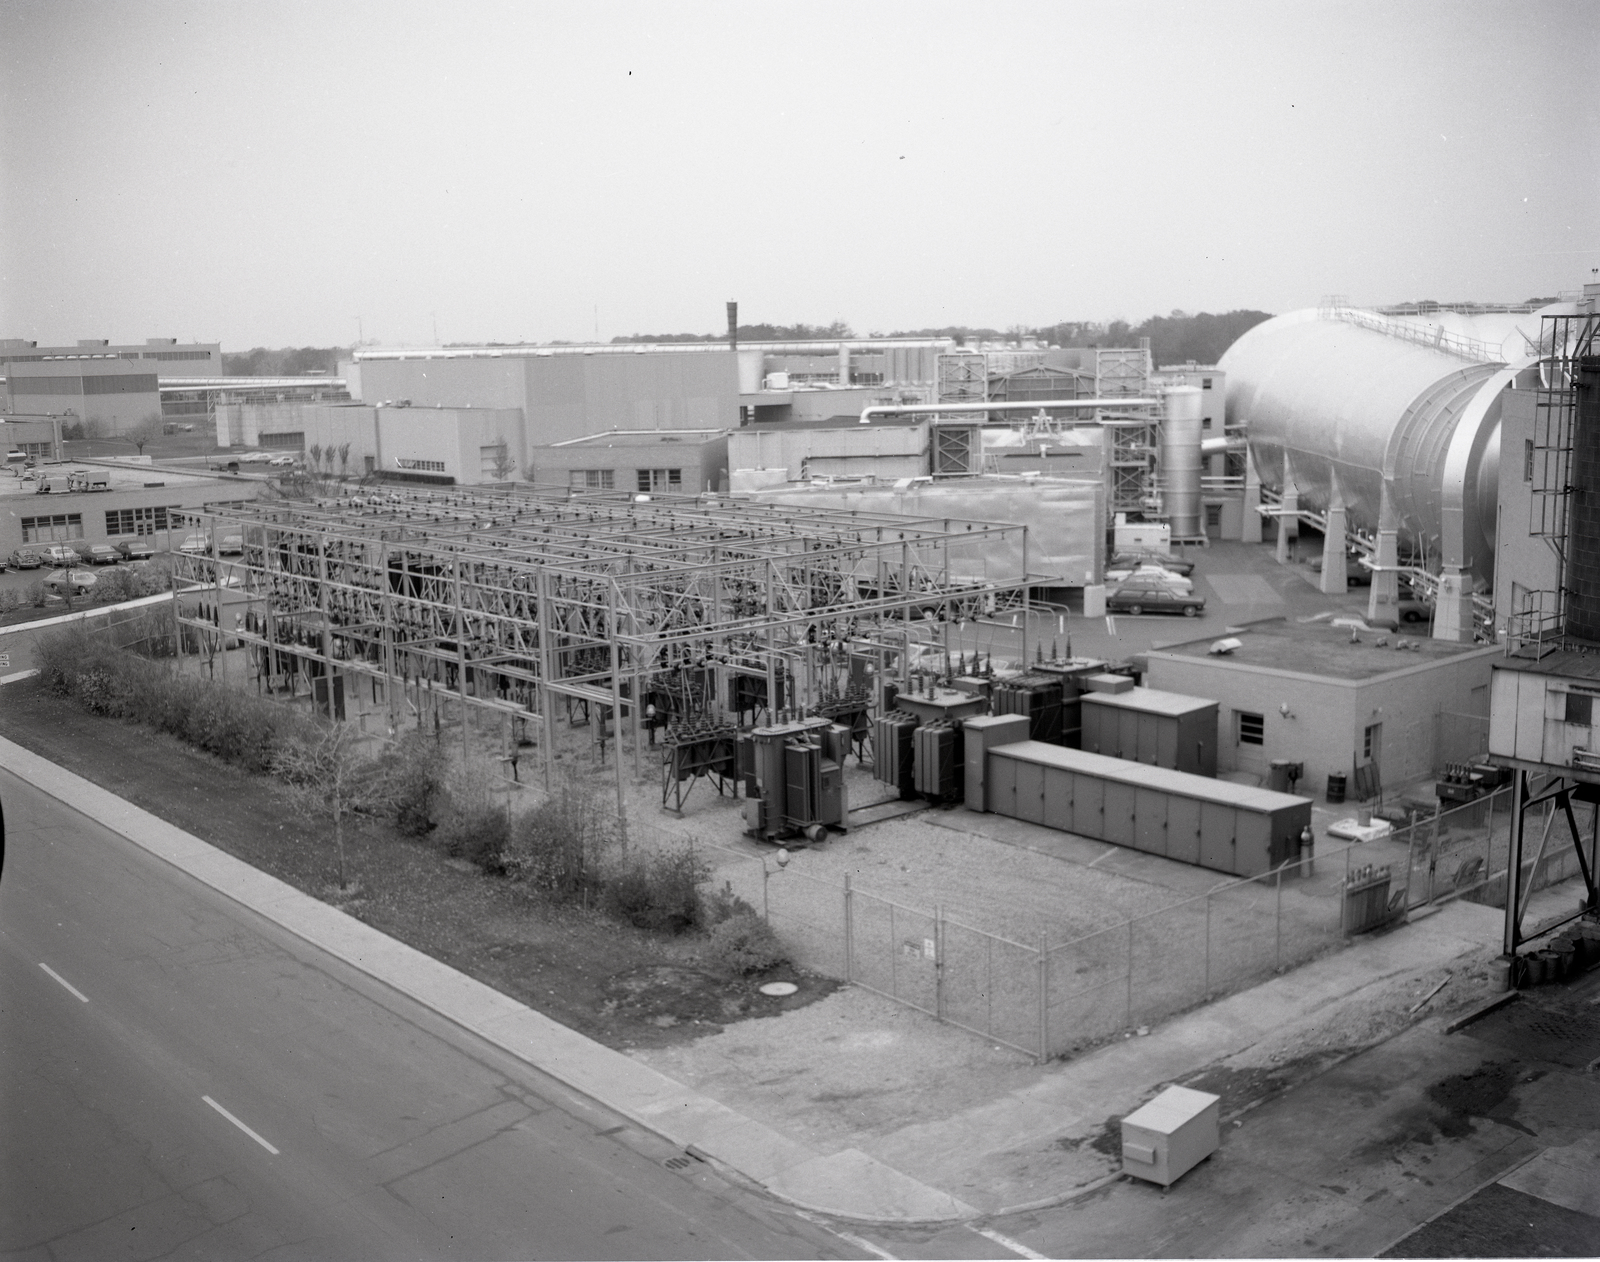 EXTERIOR VIEWS OF SUBSTATIONS AND TUNNELS PHOTOGRAPHED FROM A CHERRY PICKER